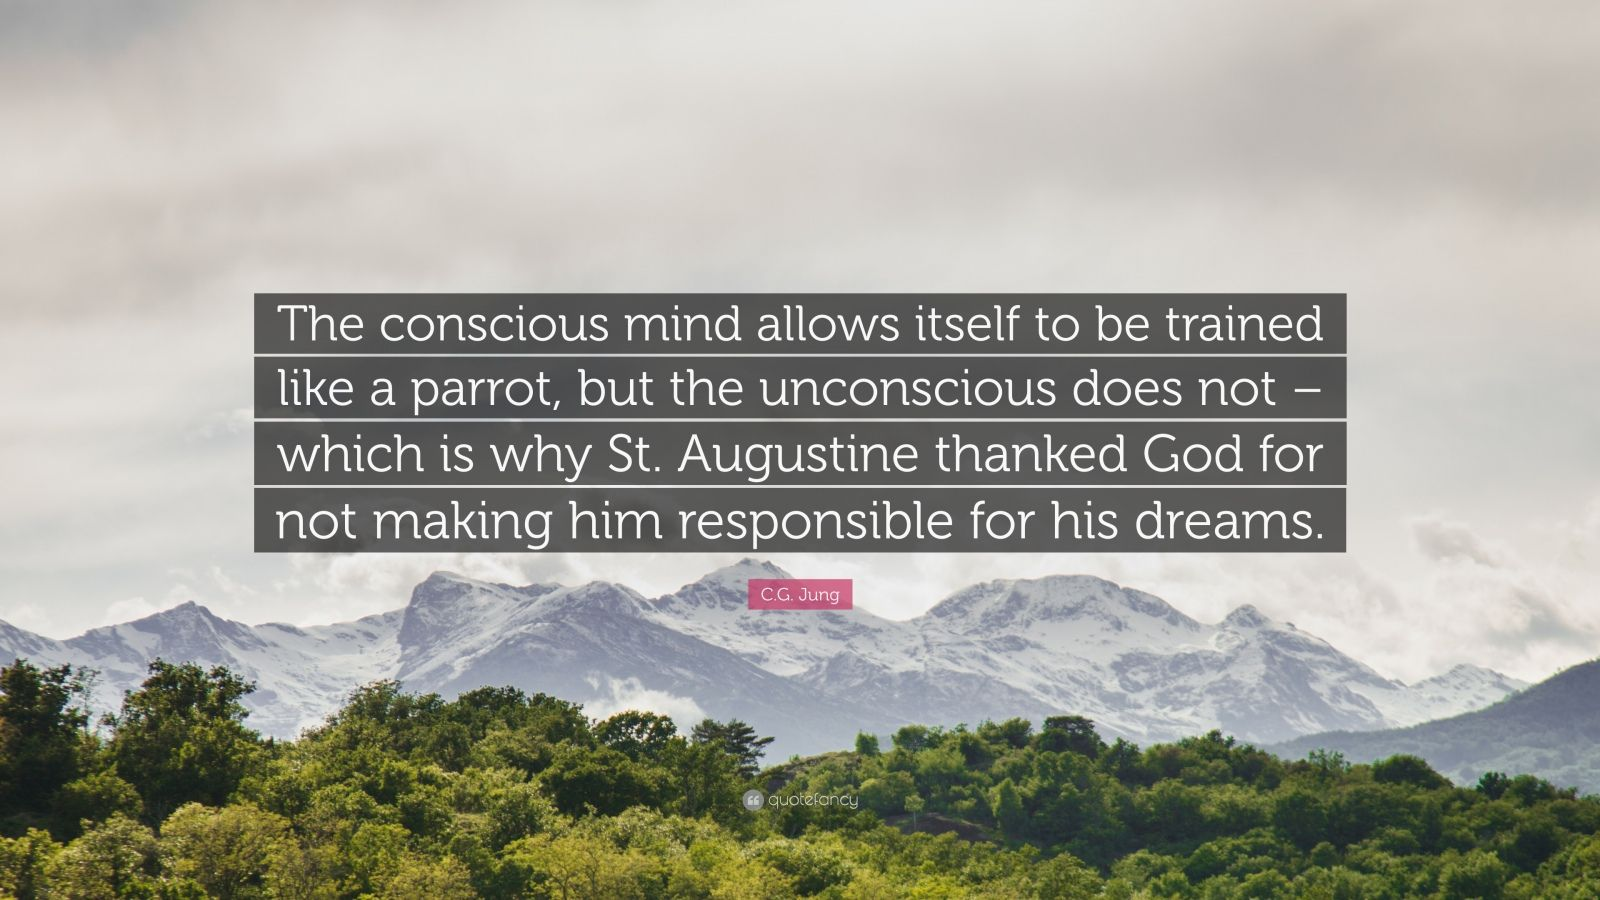 """C.G. Jung Quote: """"The conscious mind allows itself to be trained like a parrot, but the unconscious does not – which is why St. Augustine thanked God for not making him responsible for his dreams."""""""